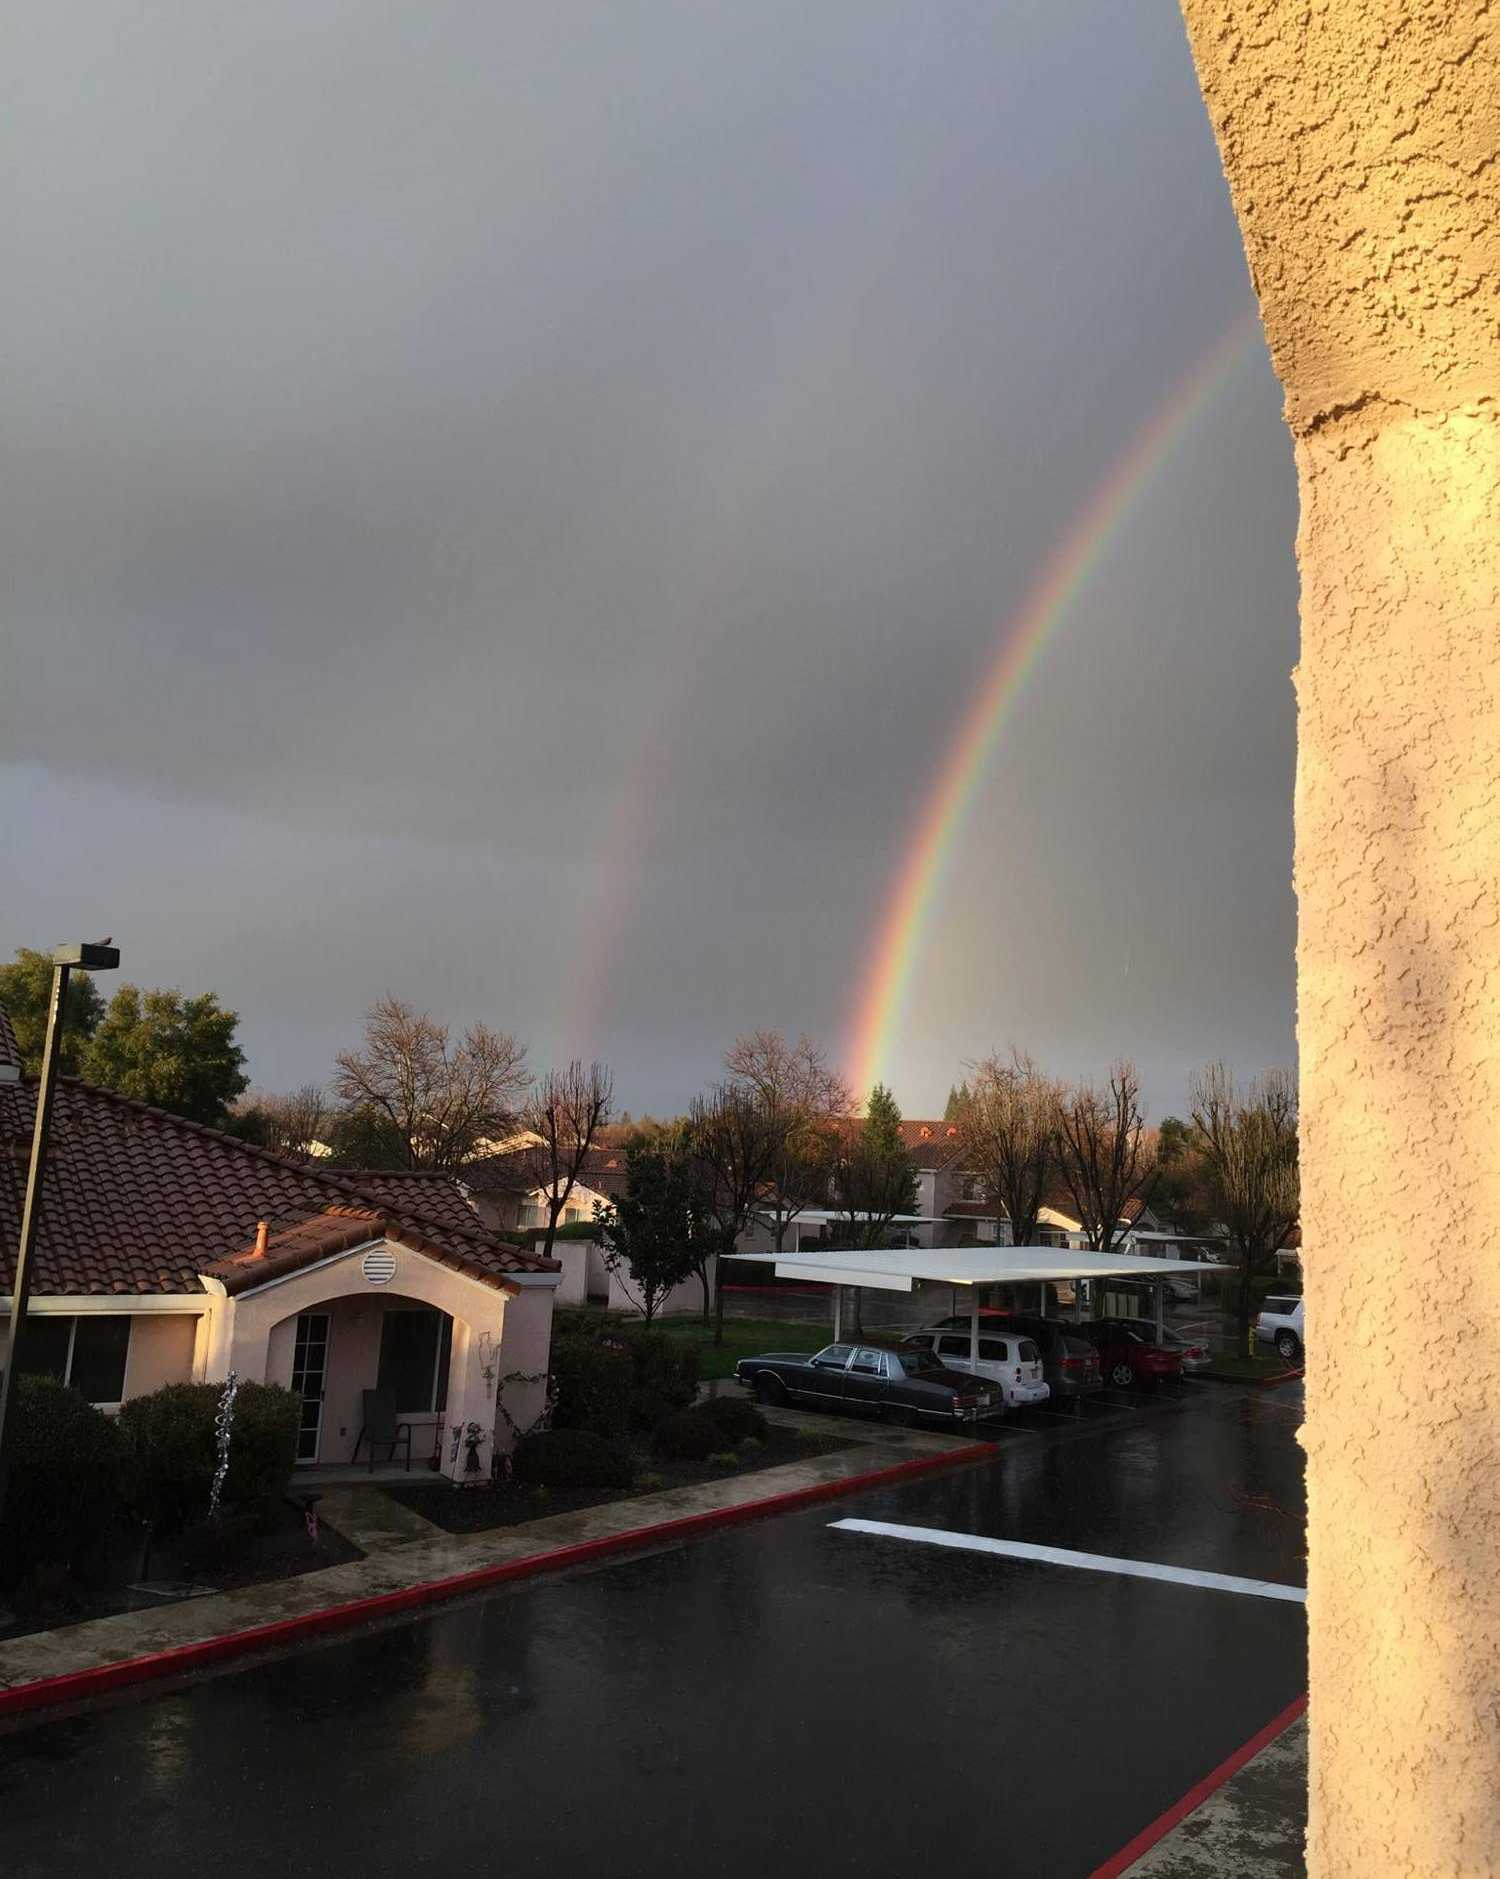 This double rainbow was spotted over Rocklin on Monday, Jan. 23, 2017.